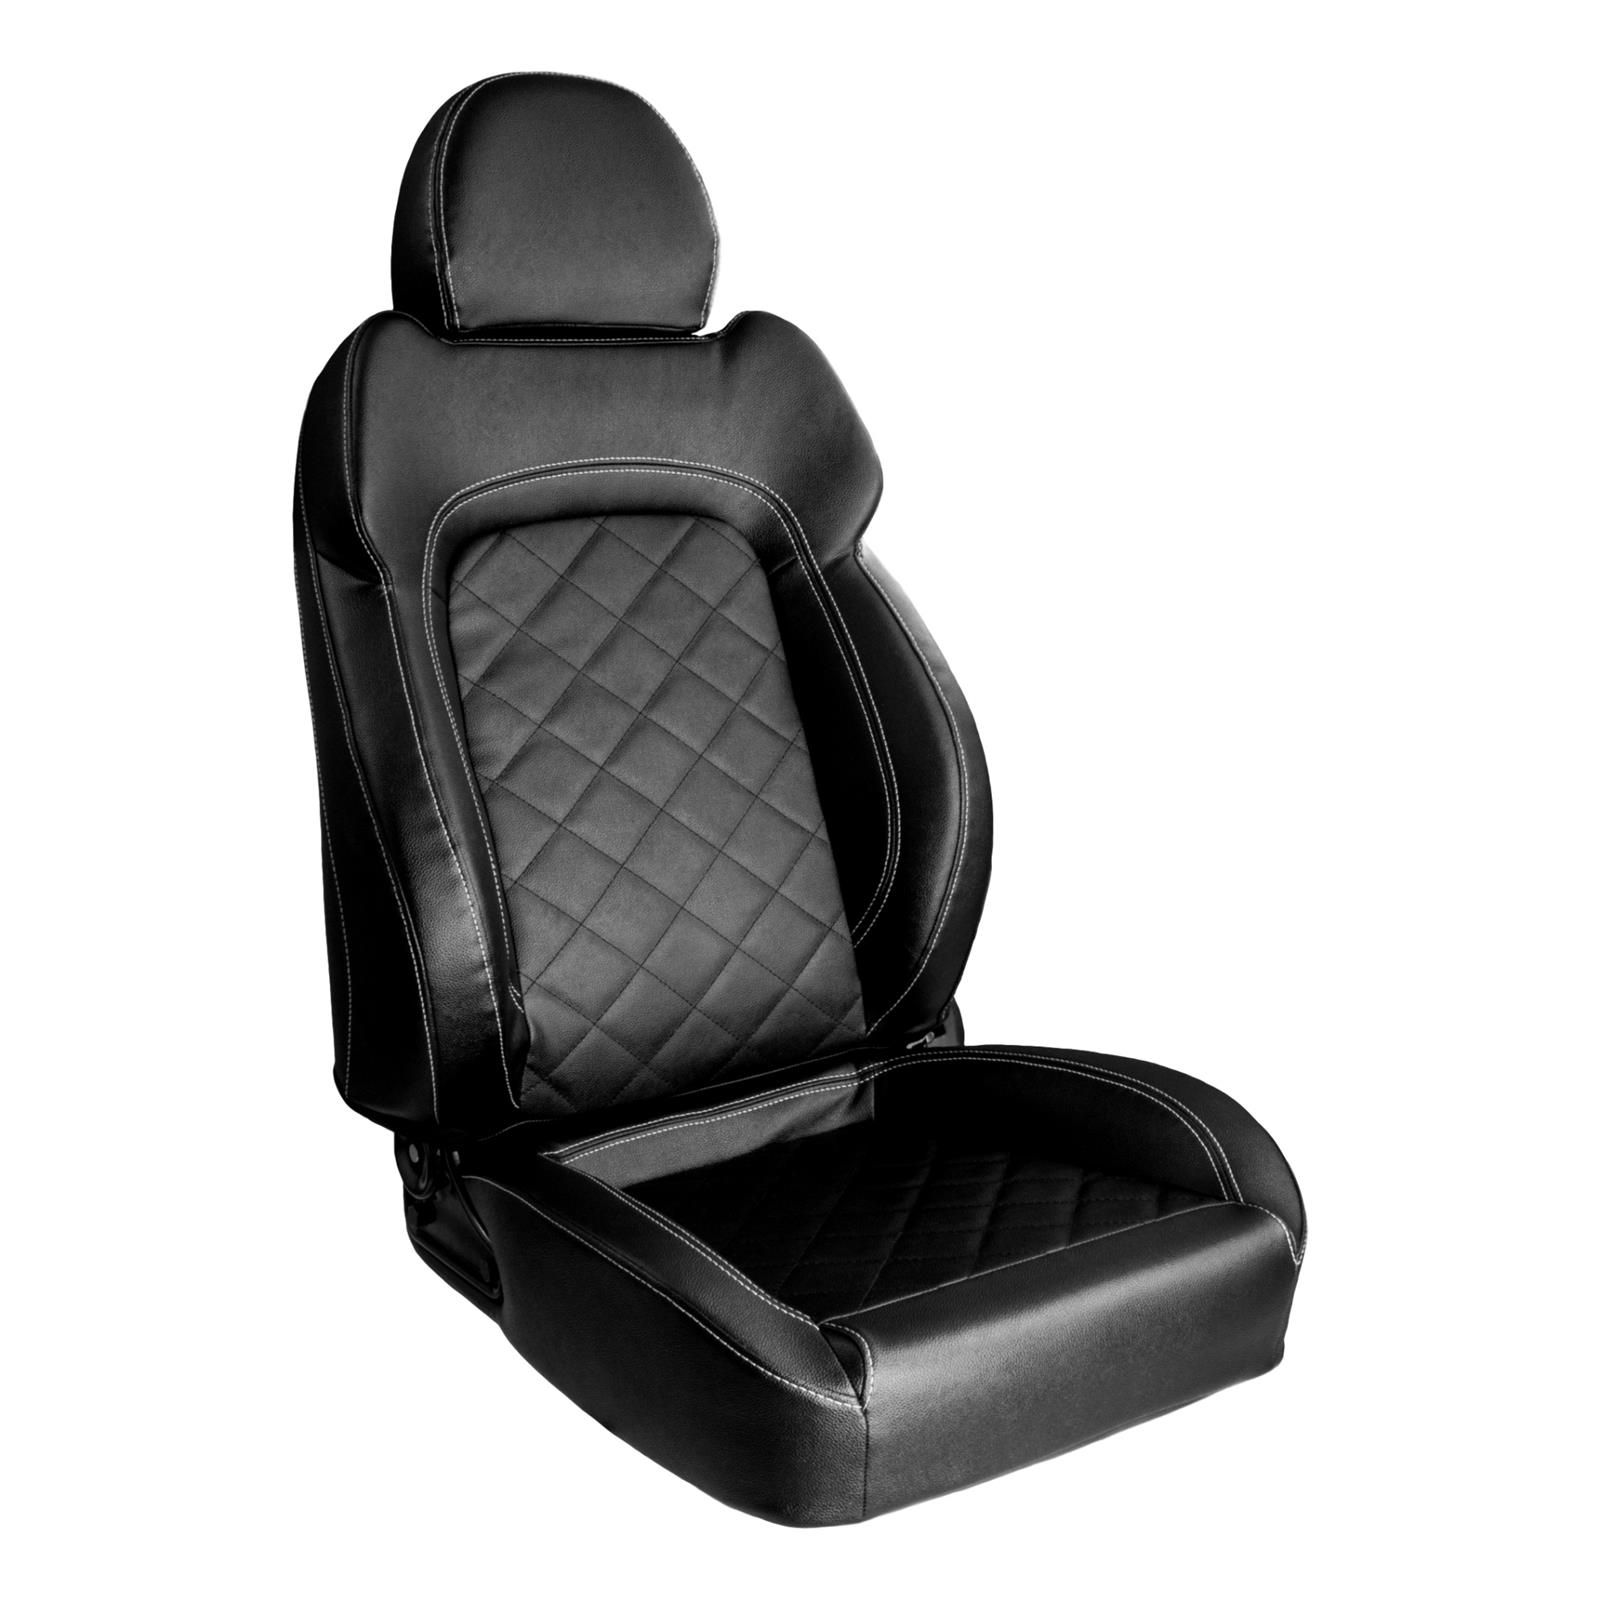 Find Procar Touring Series 1680 Seats 80 1680 51l And Get Free Shipping On Orders Over 99 At Summit Racing Pro Touring Cars Aggressive Driving Car Projects